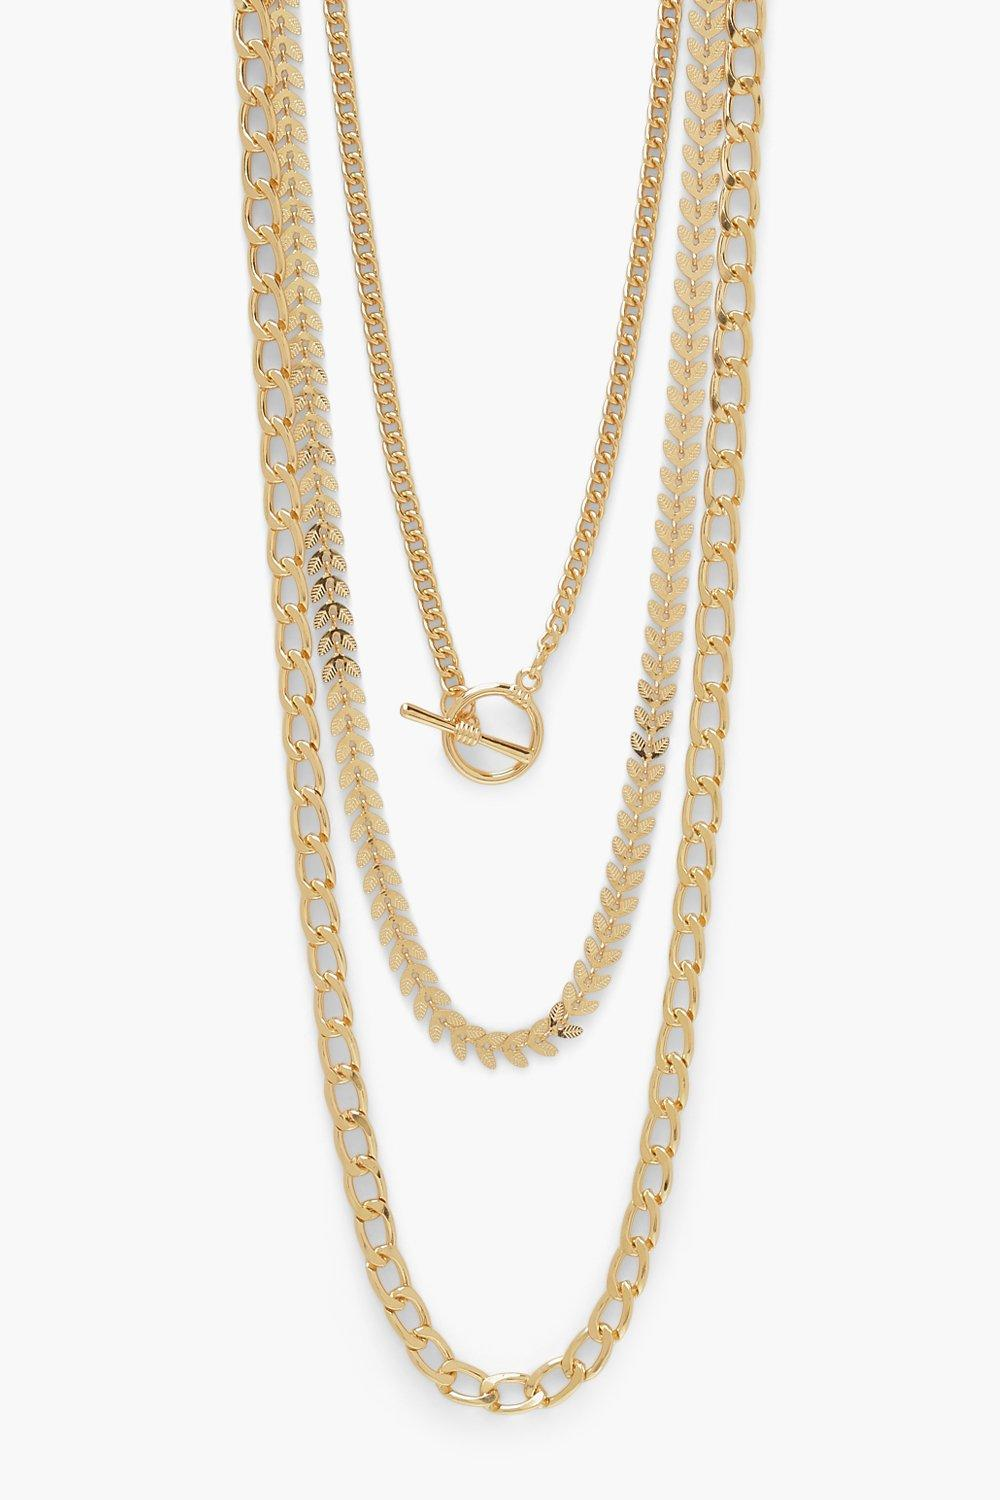 Boohoo 3 Pack T Bar Mix Chain Pack, Gold